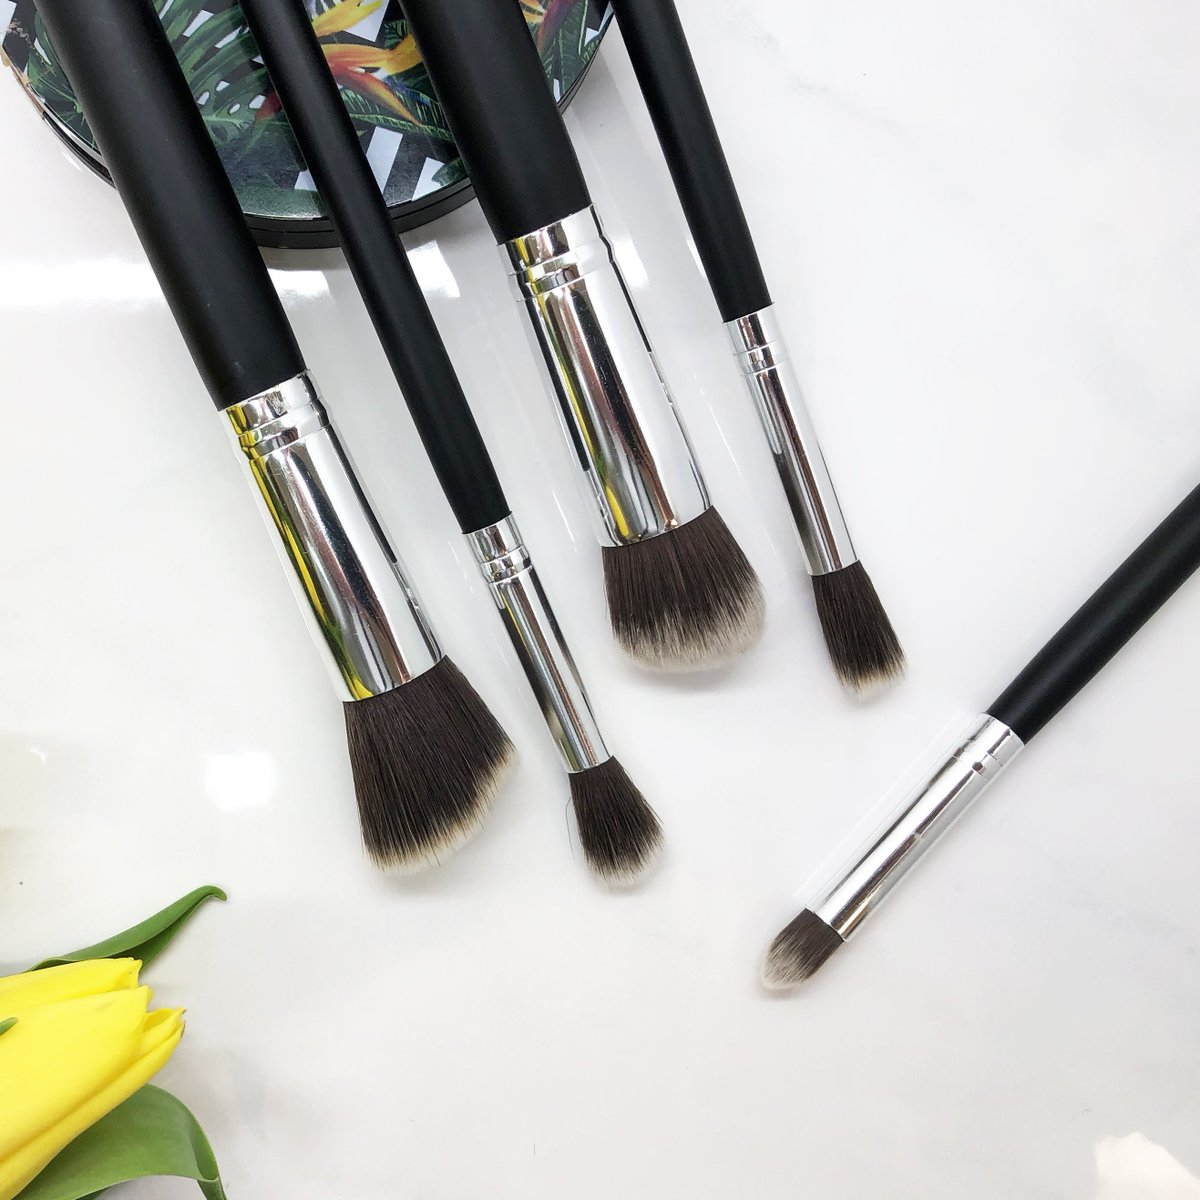 My Makeup Brush Set (@mymakeupbrush) | Twitter